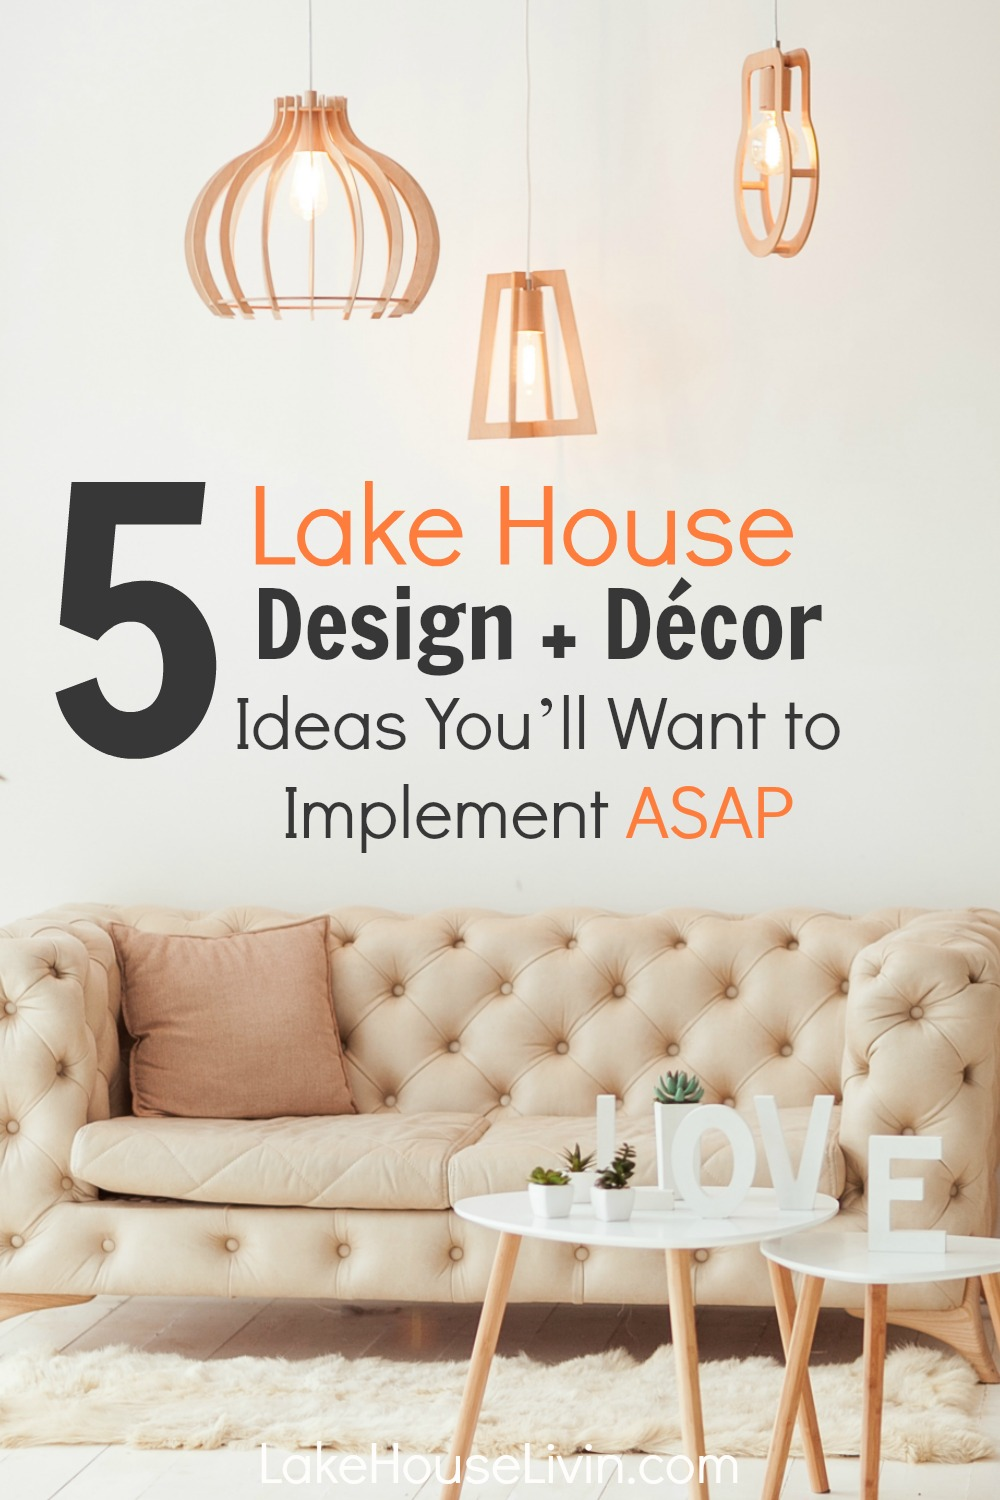 lake house design and decor idea, lake house decorating, ideas for lake house, lake house livin